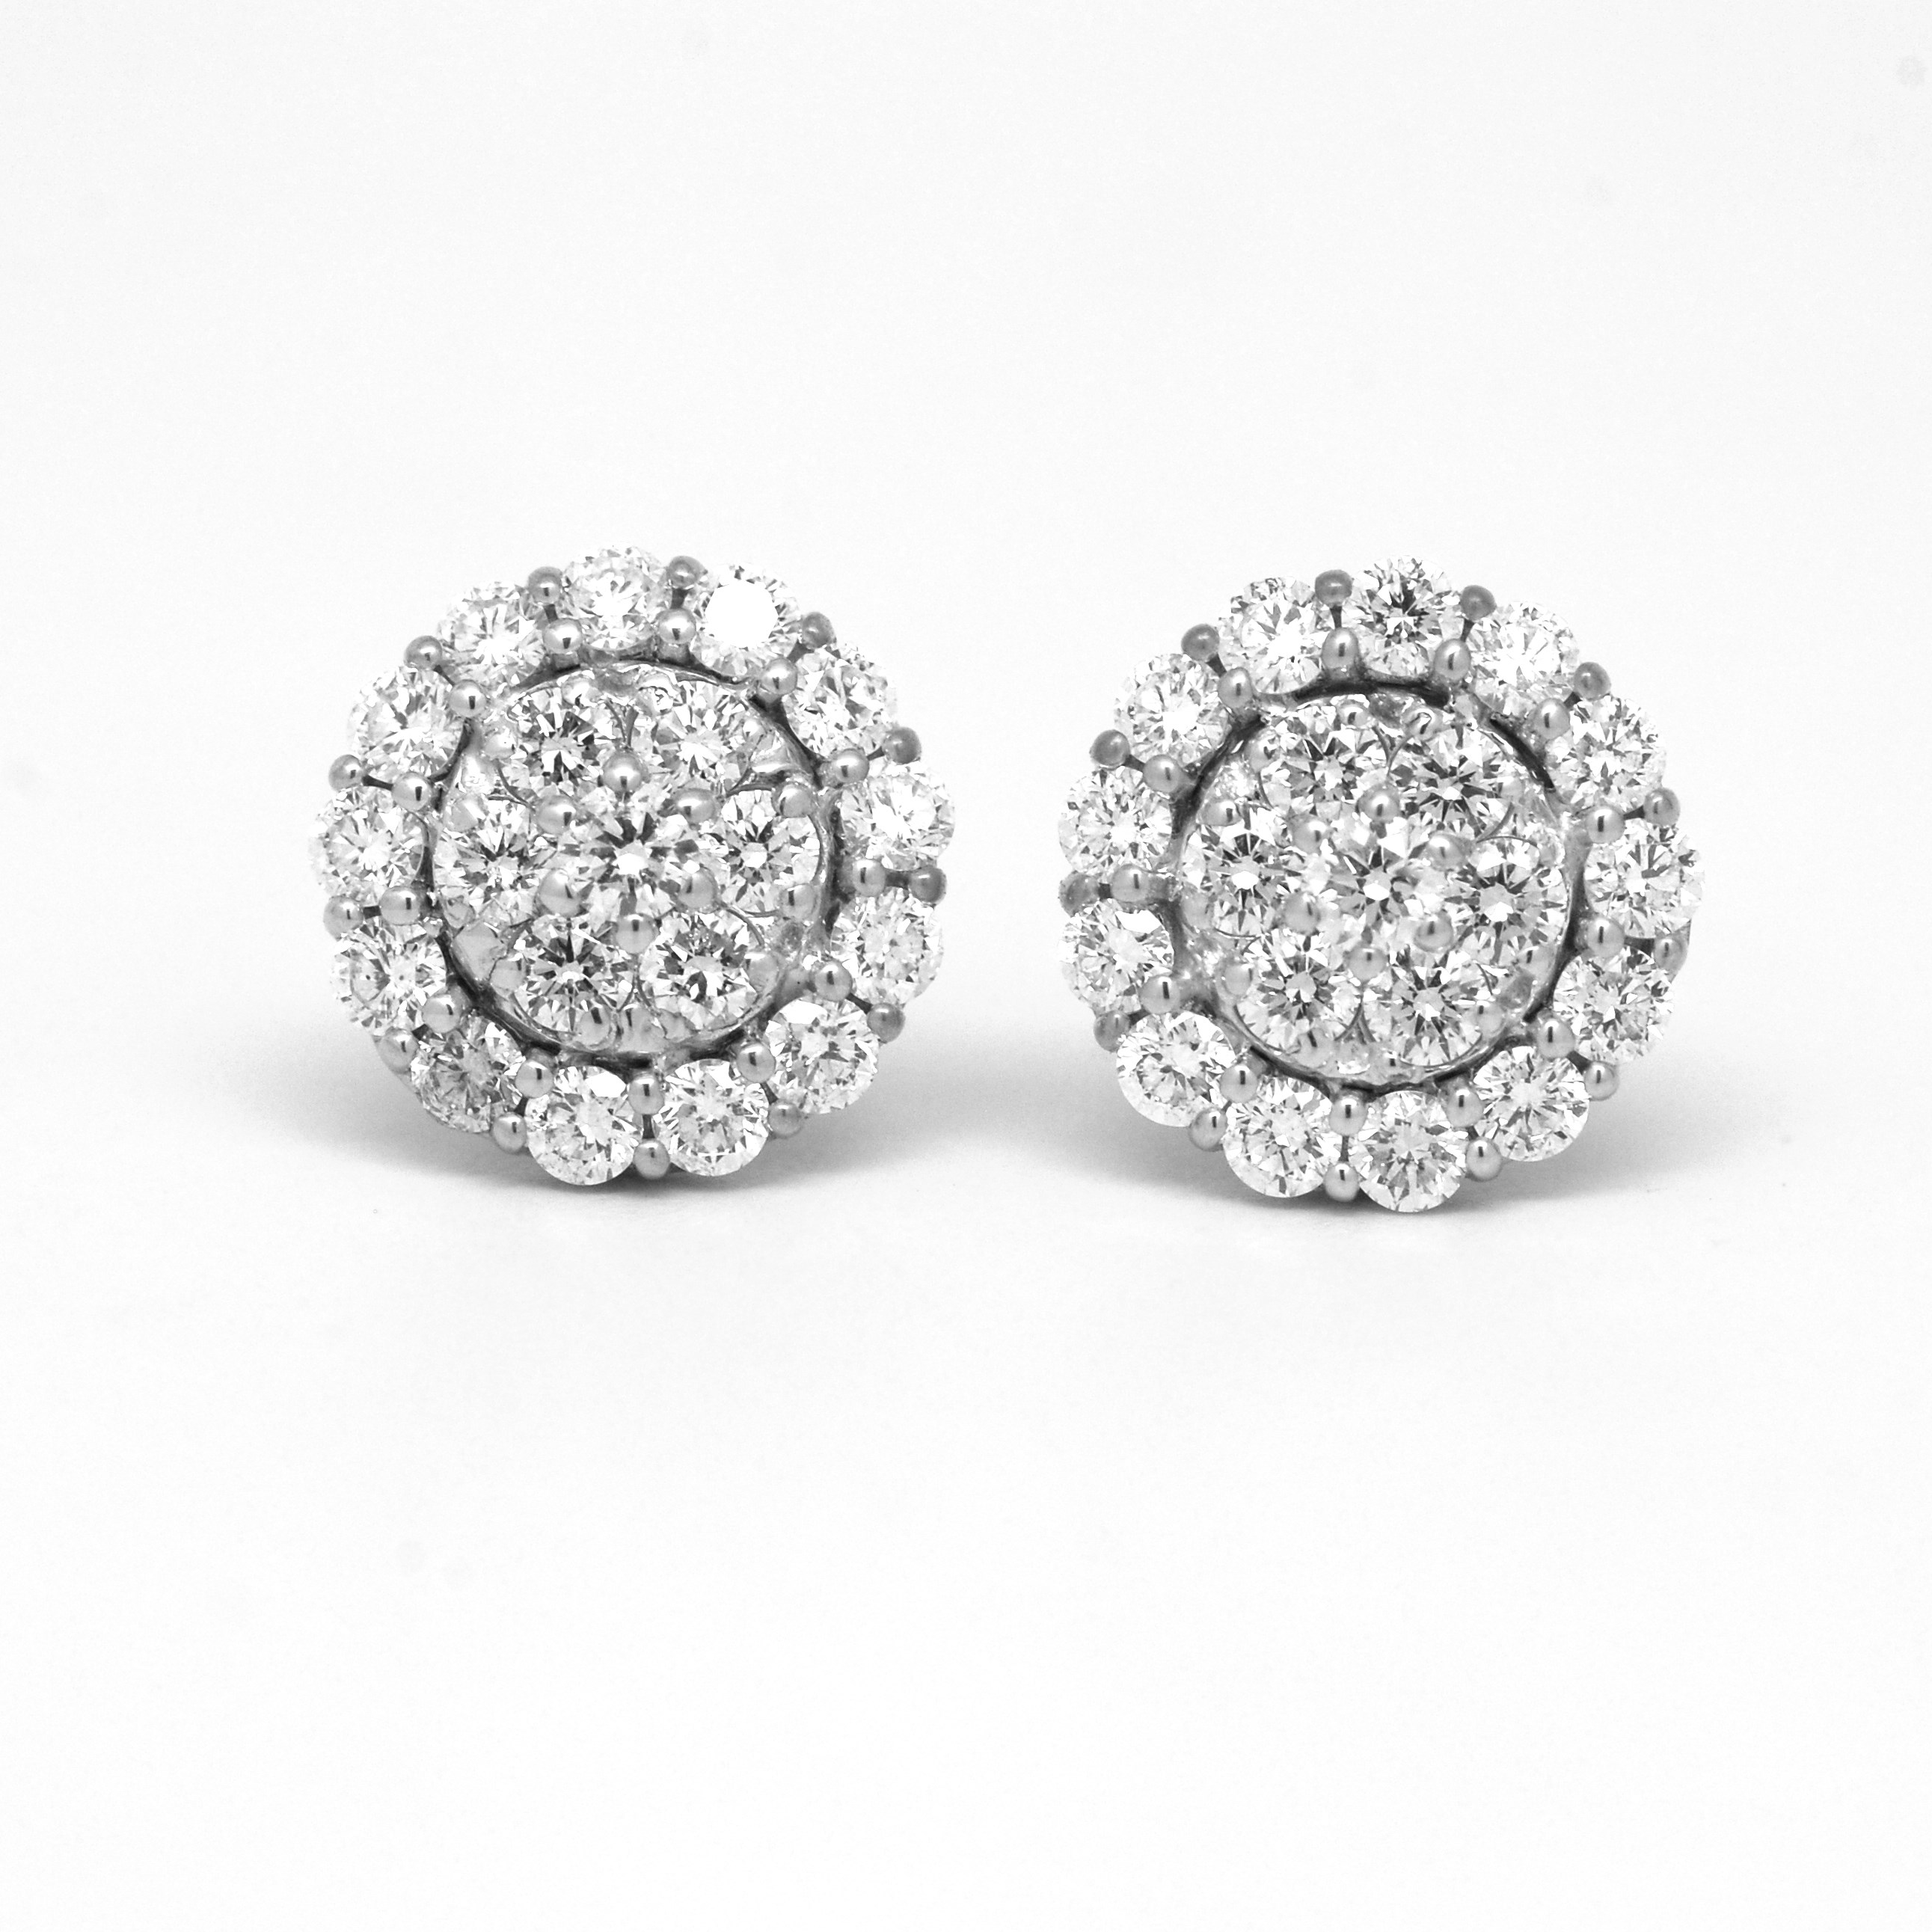 brilliantcut cut aurora diamond studearrings classic stud earrings brilliant claw set